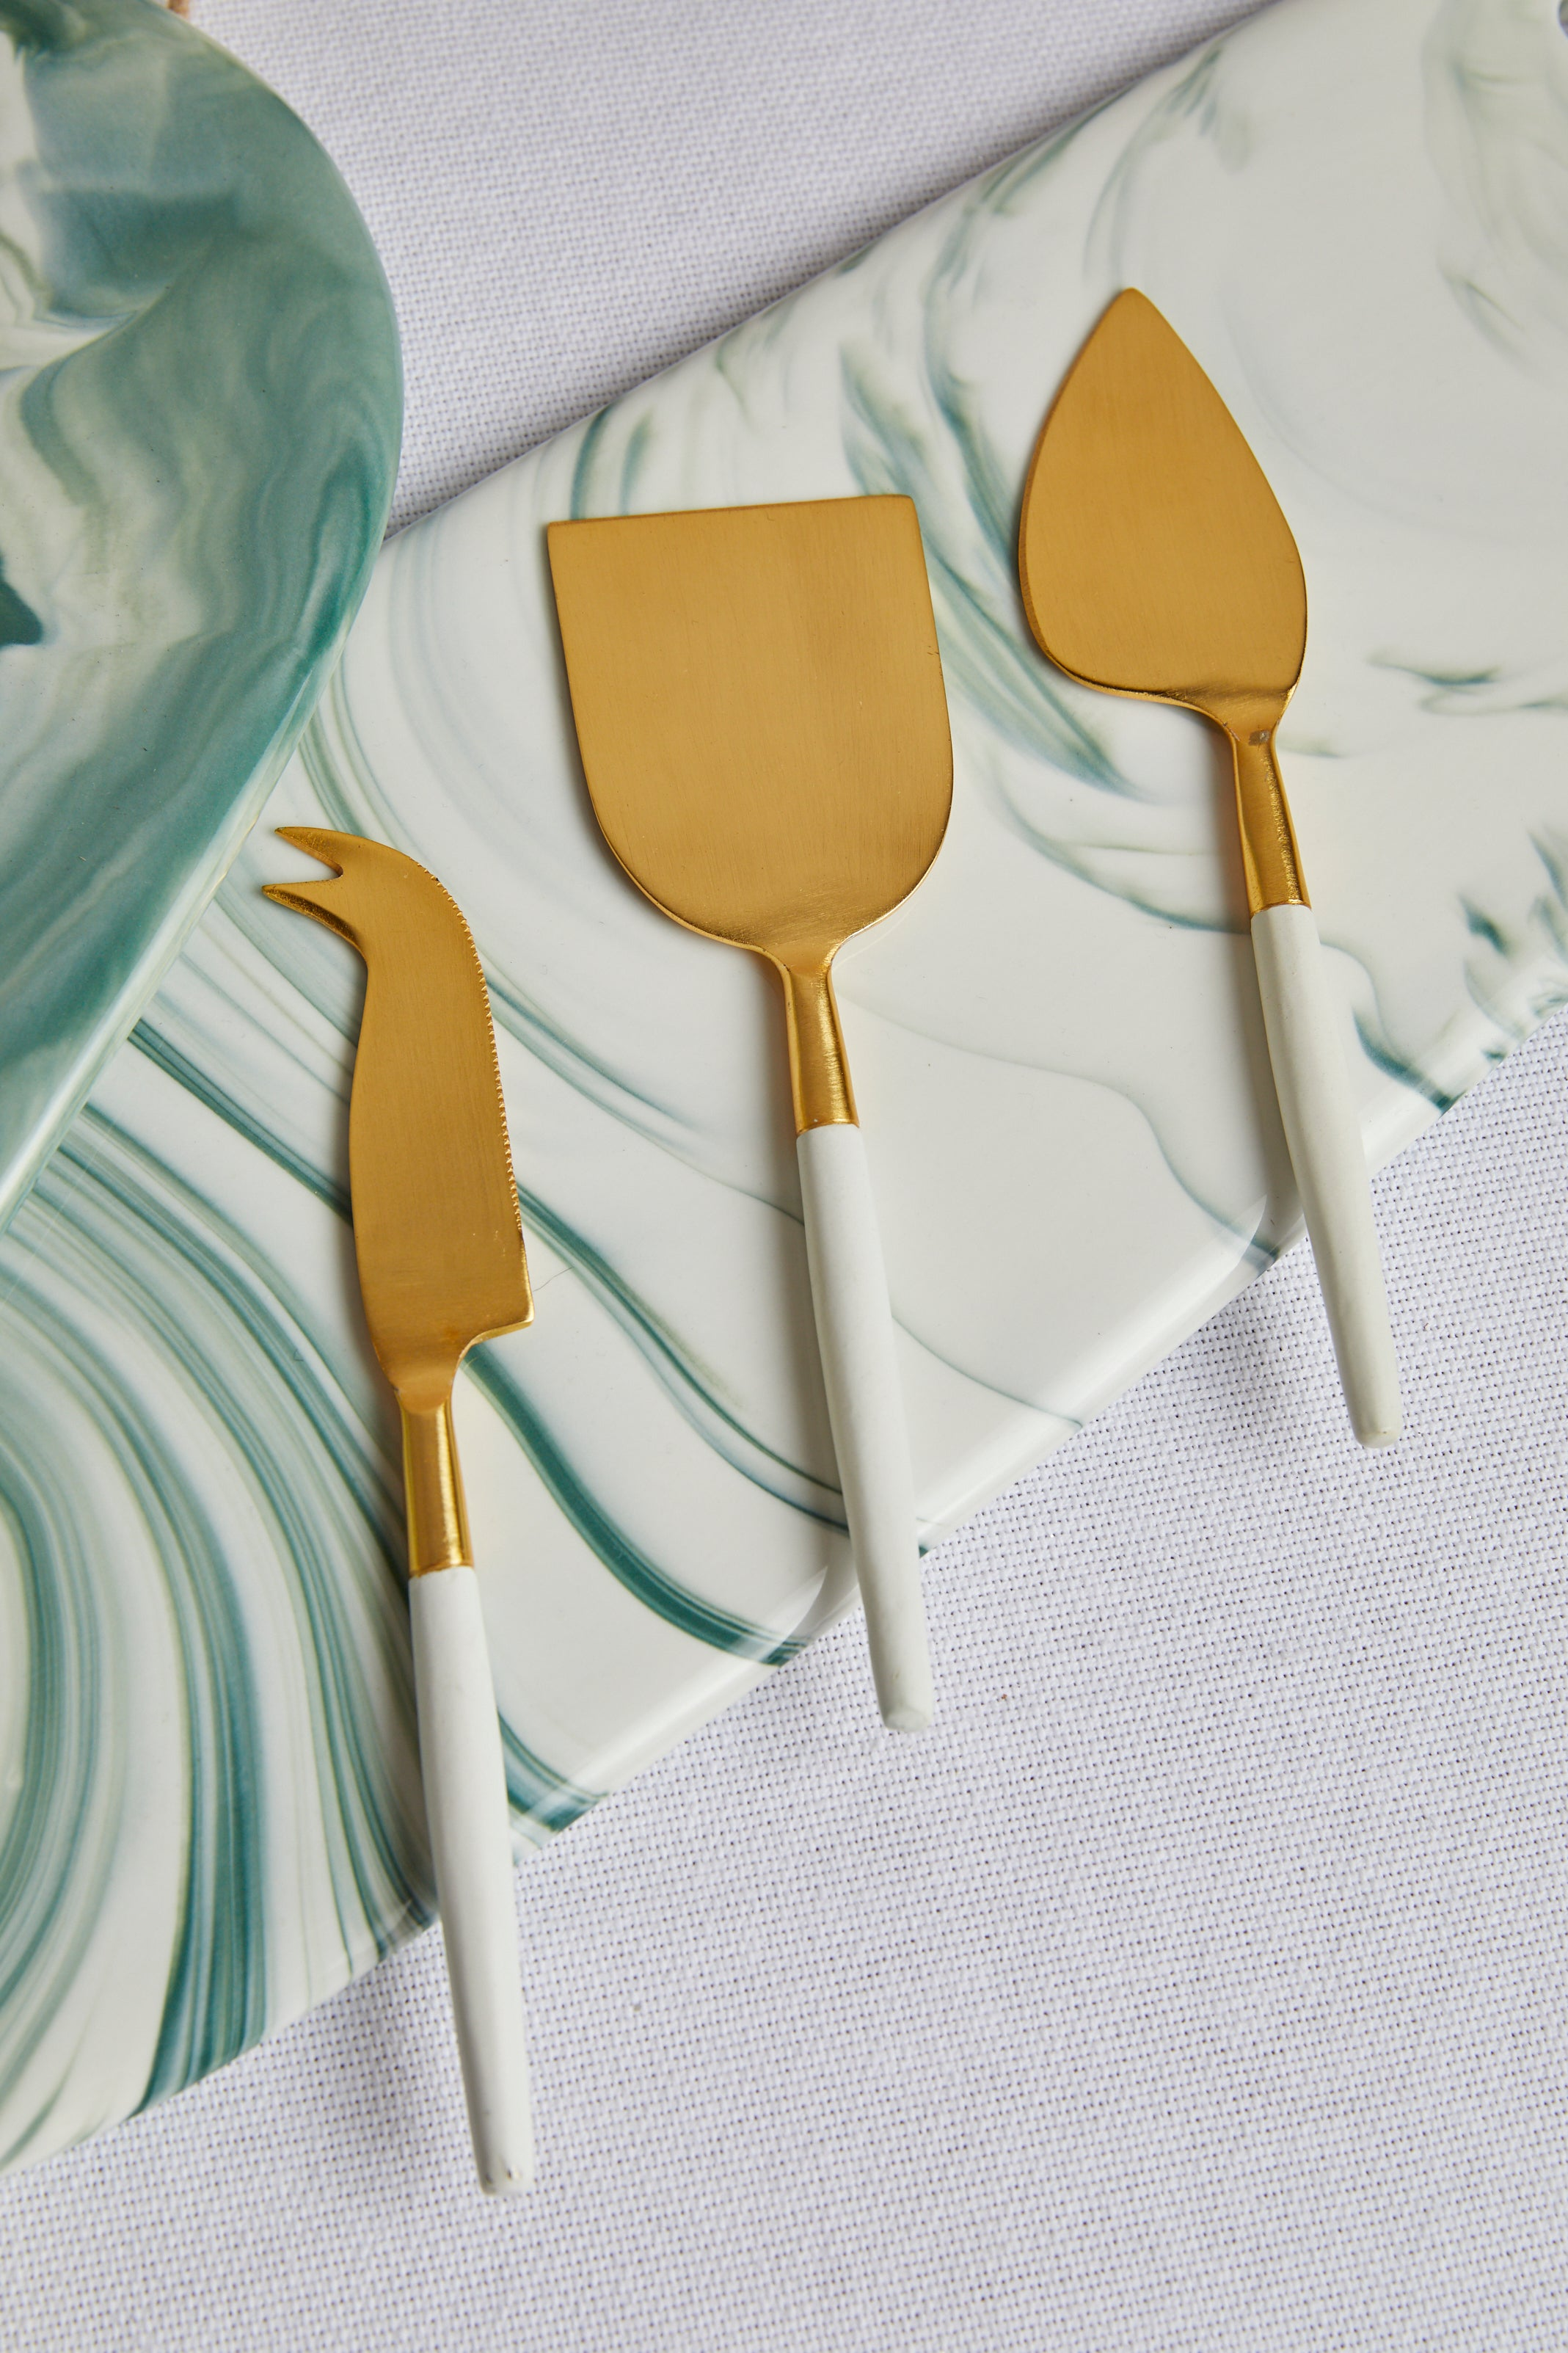 White and Gold Cheese Knife Set - picnic-sf